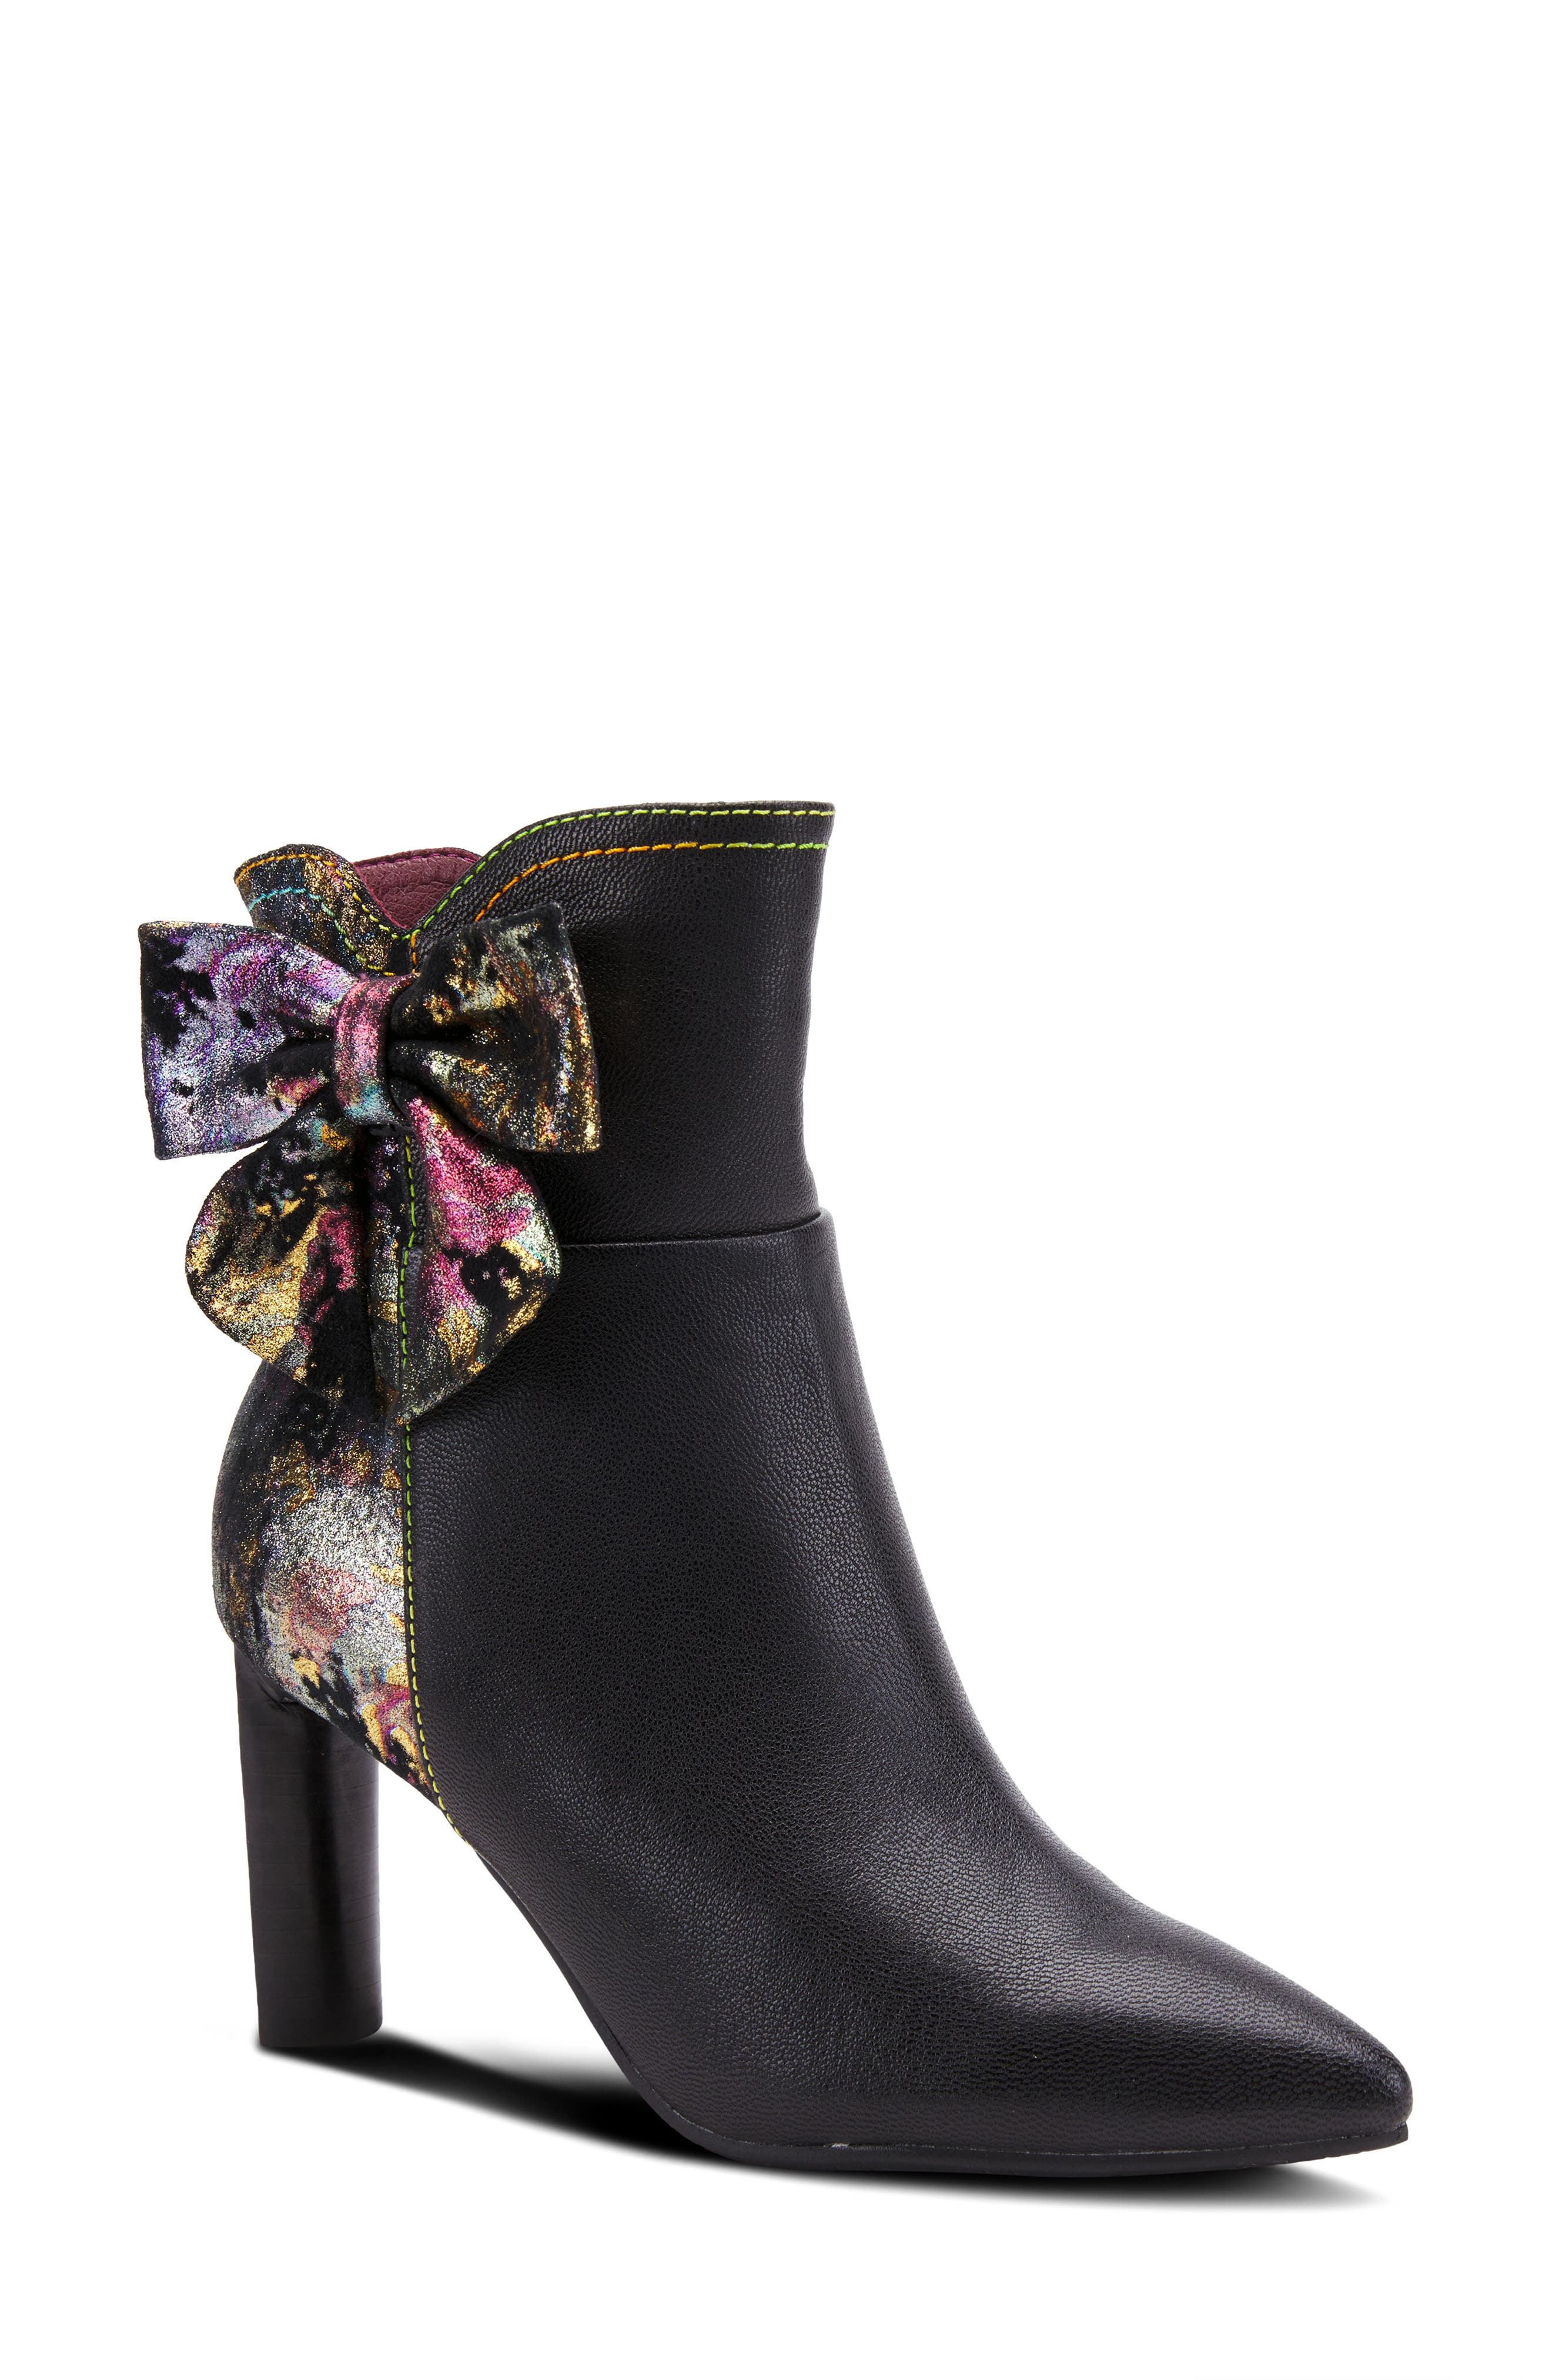 A shimmering bow and plethora of colors detail the back of a pointy-toe bootie lofted by a slender rectangular heel. Style Name:L\\\'Artiste Bow Bootie (Women). Style Number: 6143713. Available in stores.